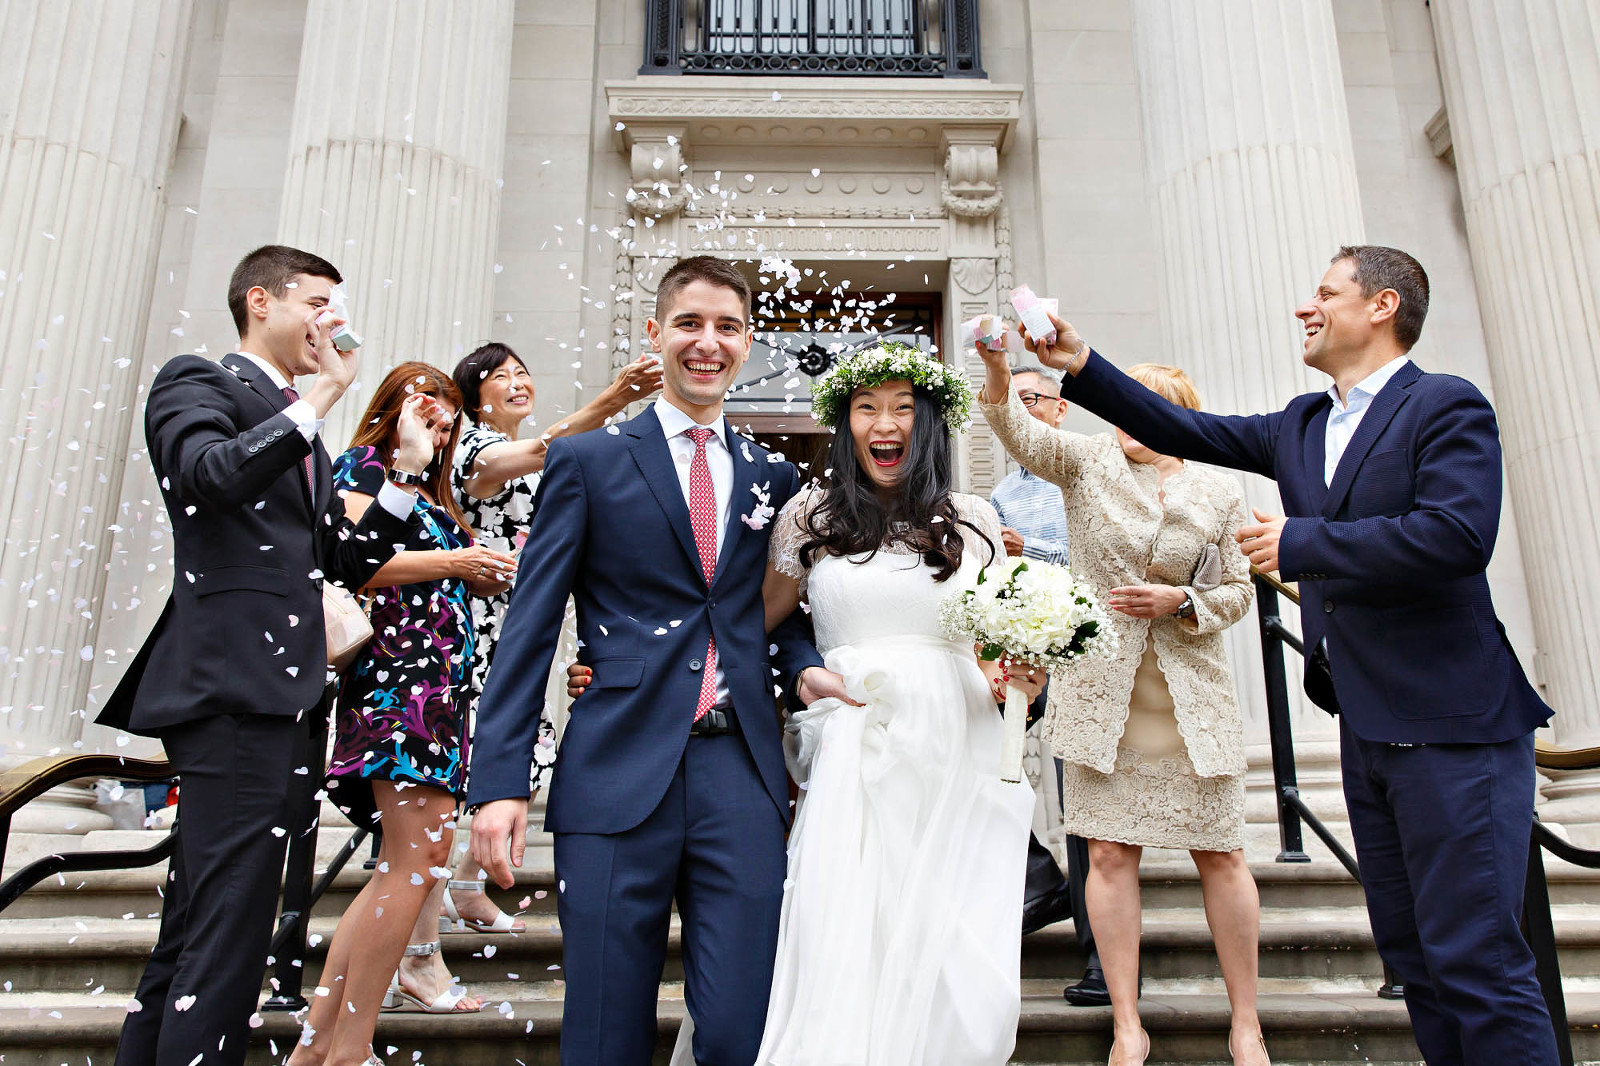 Newlyweds descend the steps of Old Marylebone Town Hall after their civil marriage ceremony.